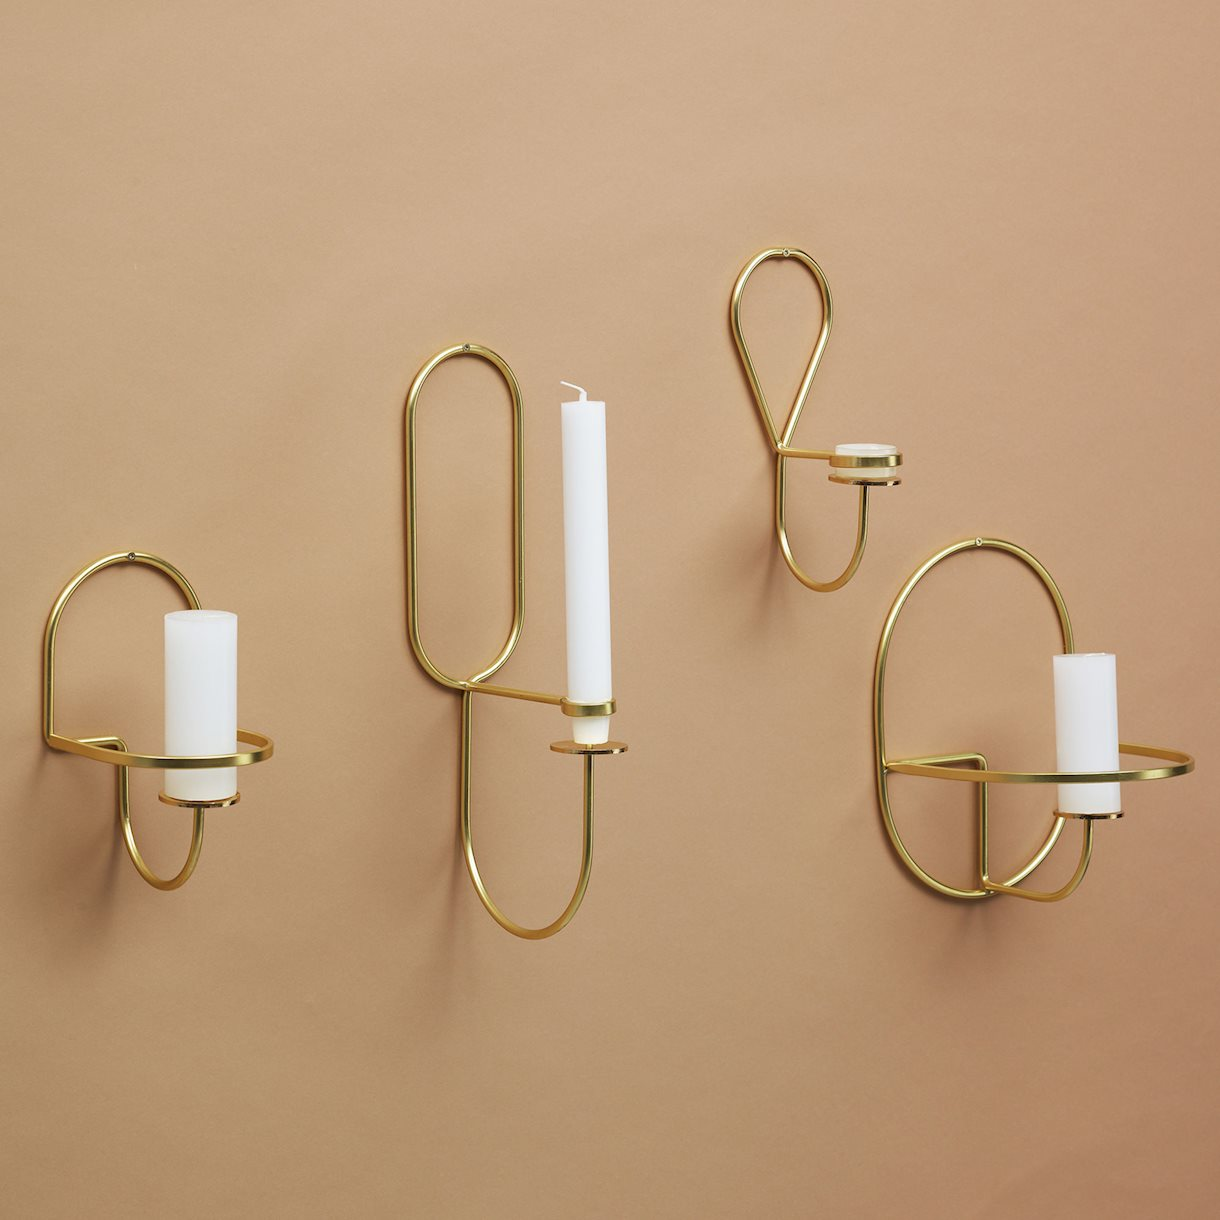 Lup – wall mounted brass candle holder by HAY – objects for the home